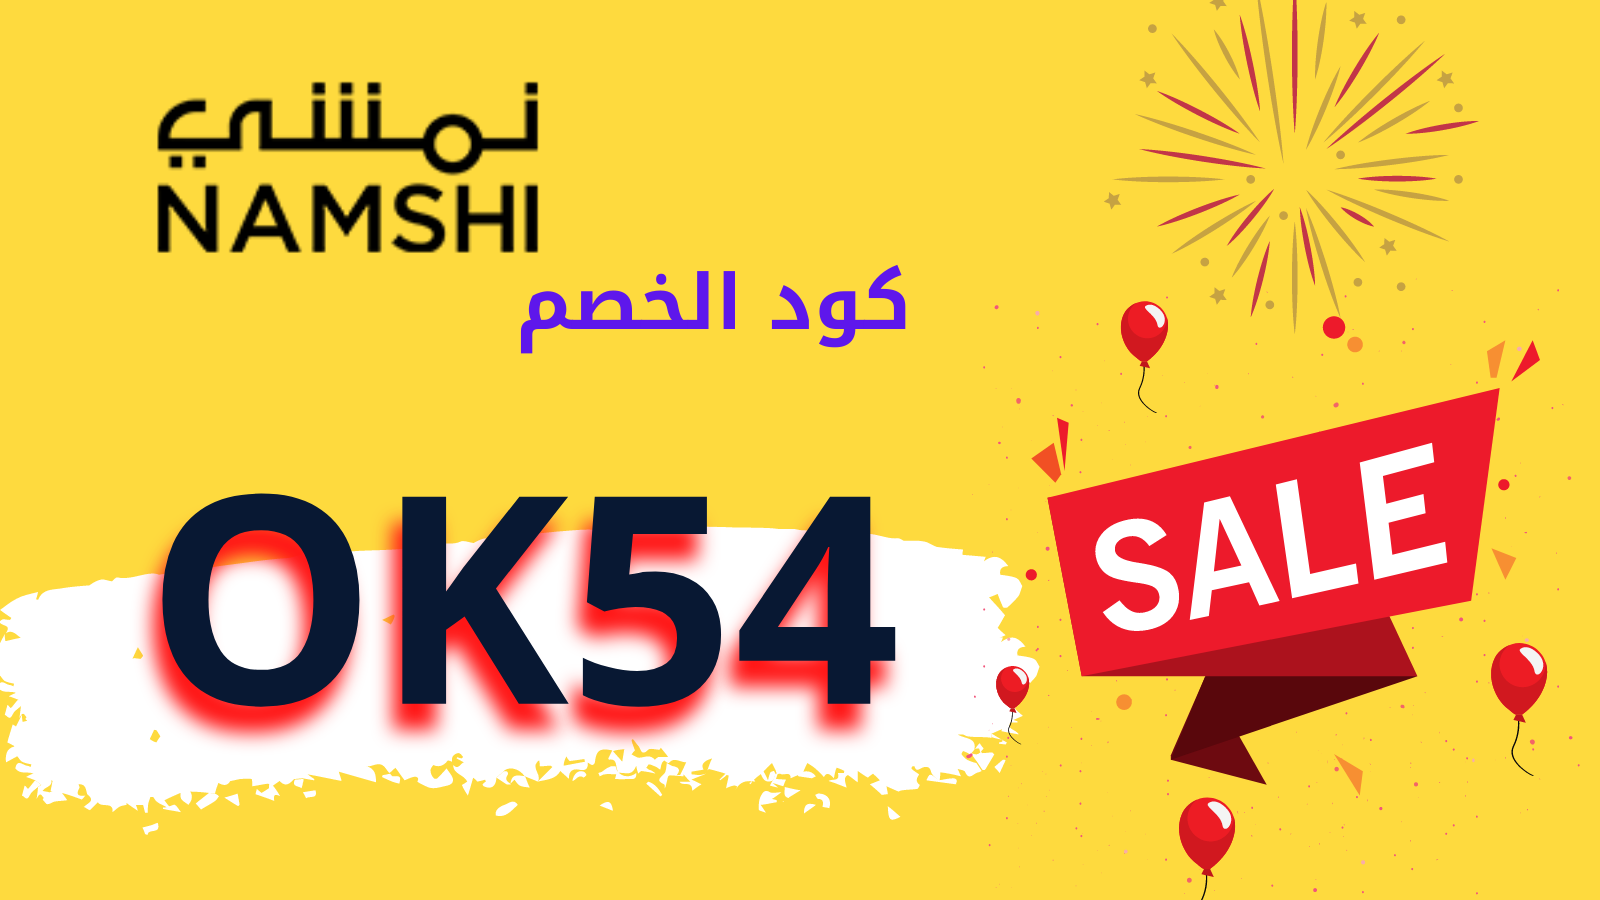 Asya15 9 2020afrdp Attention Our Lovely Customer There Is A Whole Discount Here With Namshi You Will Find The New From Everything كوبون خصم Movie Posters Movies